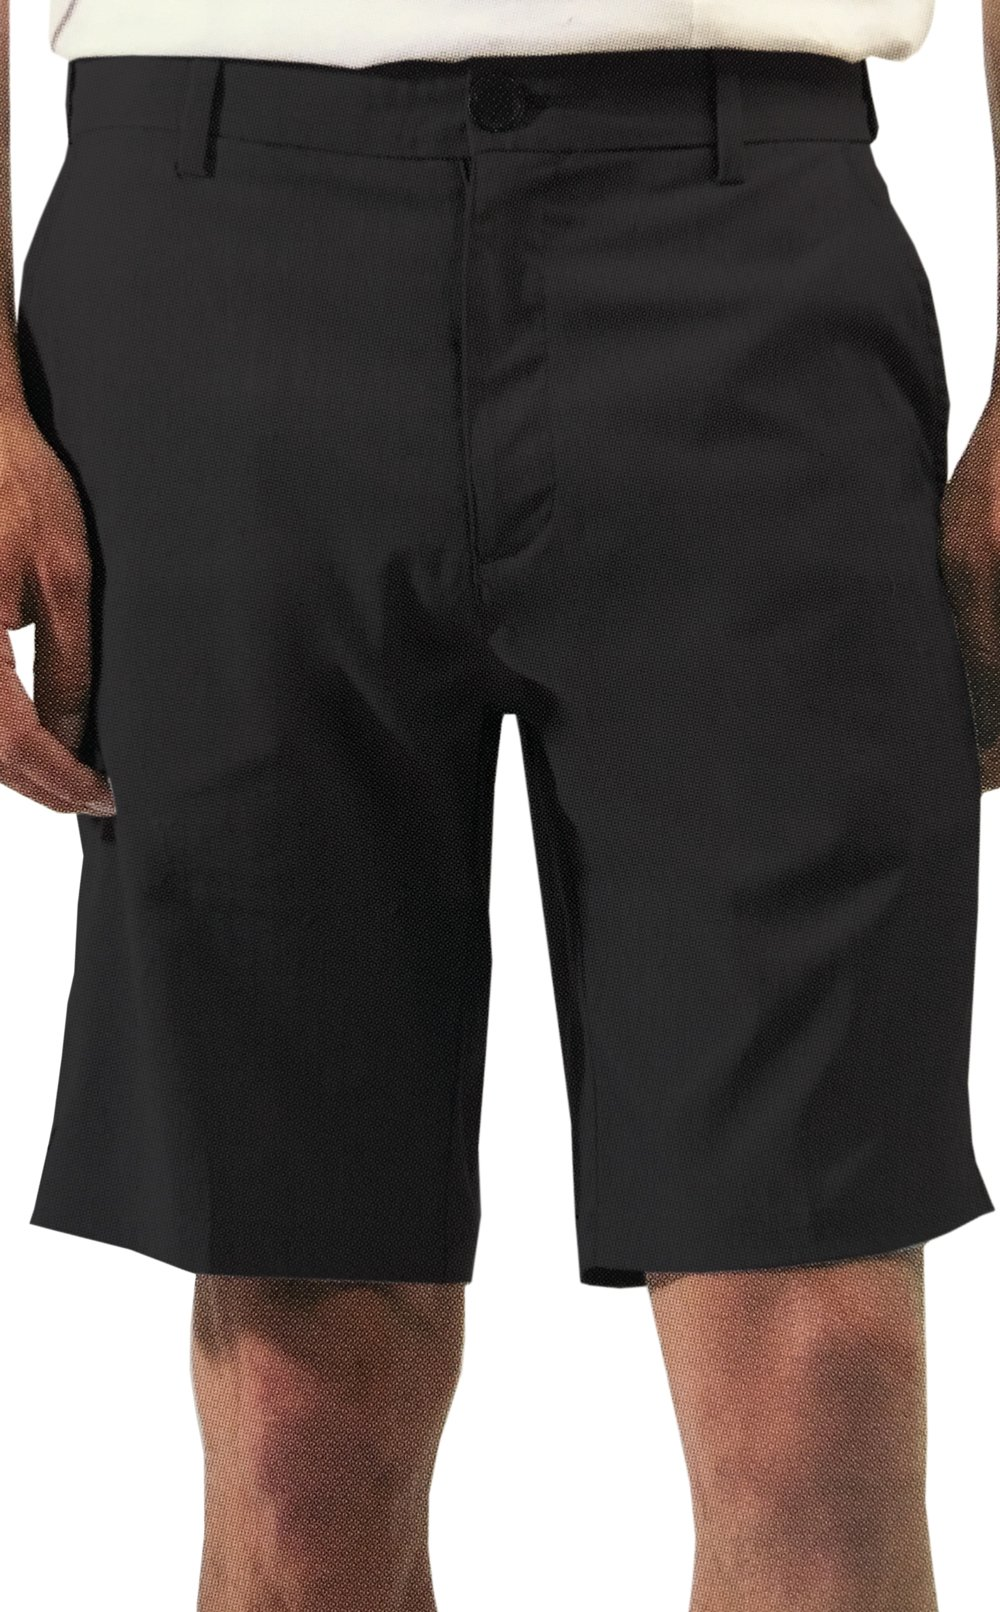 Micros Men's 2-Way Stretch Flat Front Standard Fit Shorts (Black, 32)